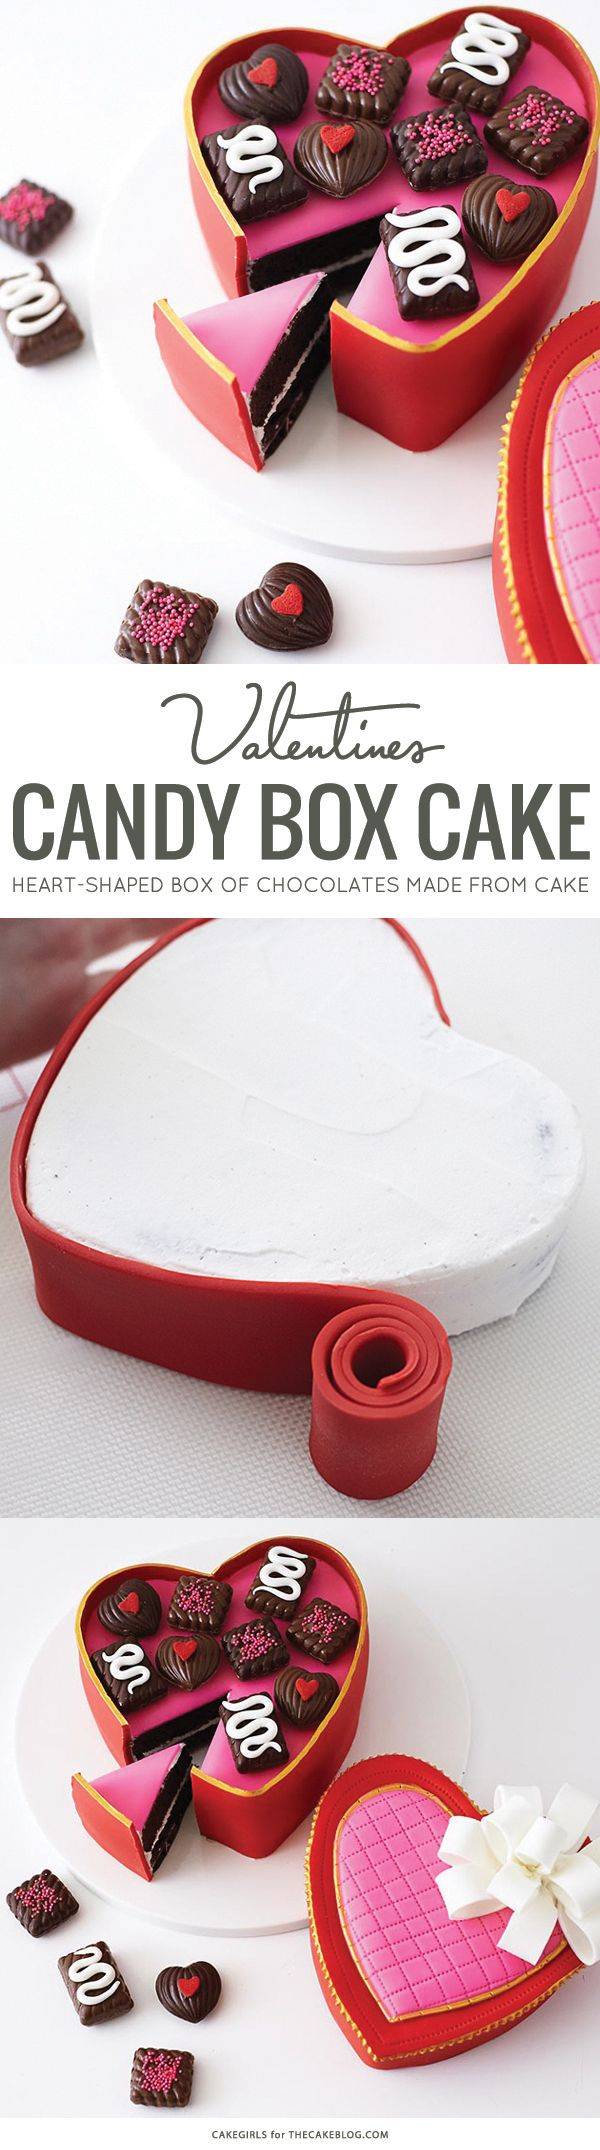 Learn how to make this Valentine's candy box cake with a step-by-step tutorial. A heart-shaped box of chocolates made from cake. By Cakegirls for TheCakeBlog.com.